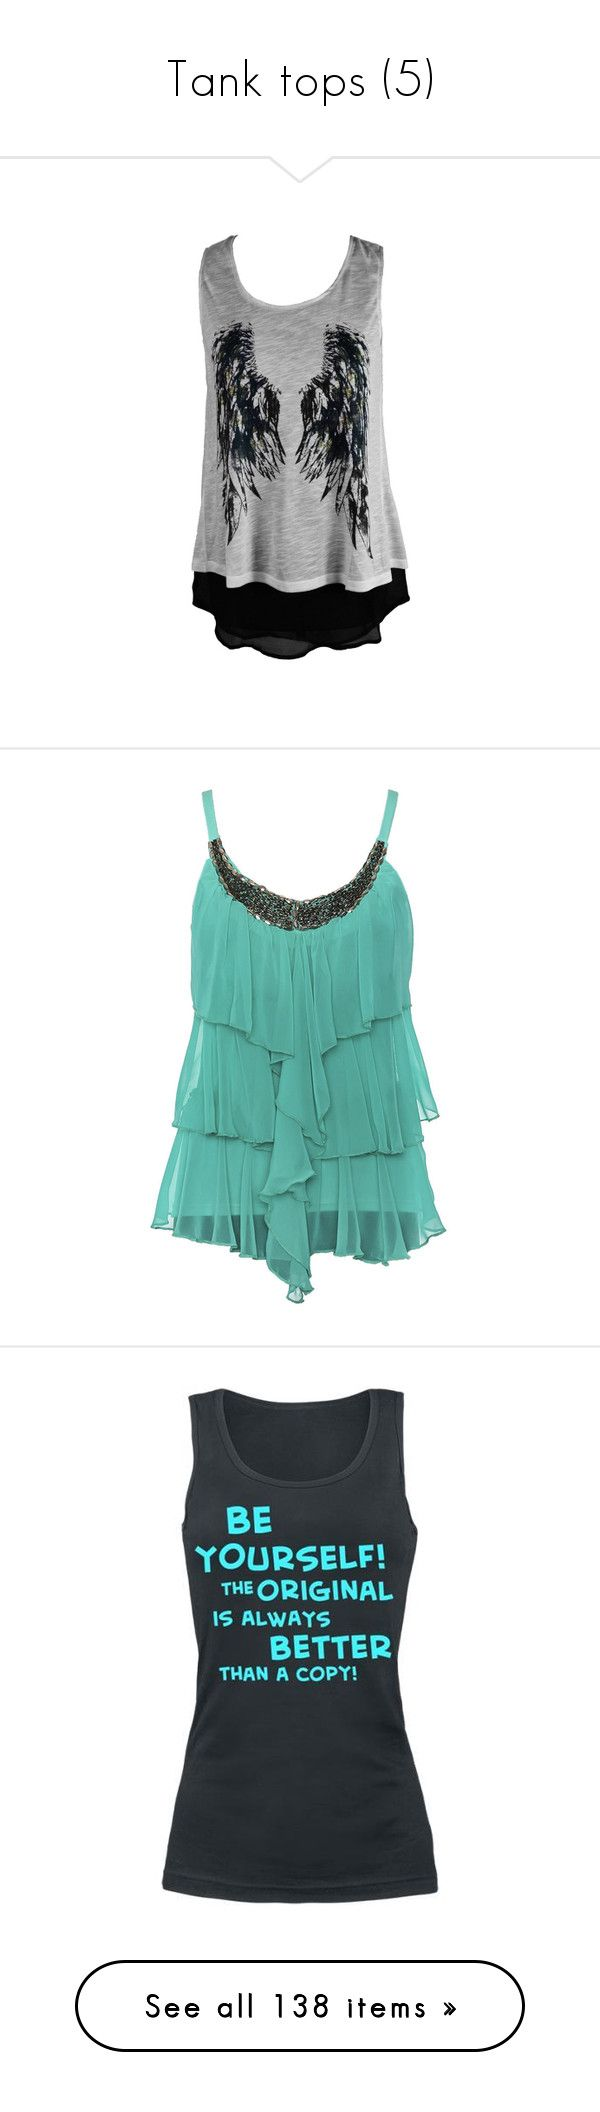 """Tank tops (5)"" by saur-the-great ❤ liked on Polyvore featuring tops, shirts, tanks, tank tops, shirt top, angel wing shirt, mint green shirt, mint green tank top, mint green top and mint top"